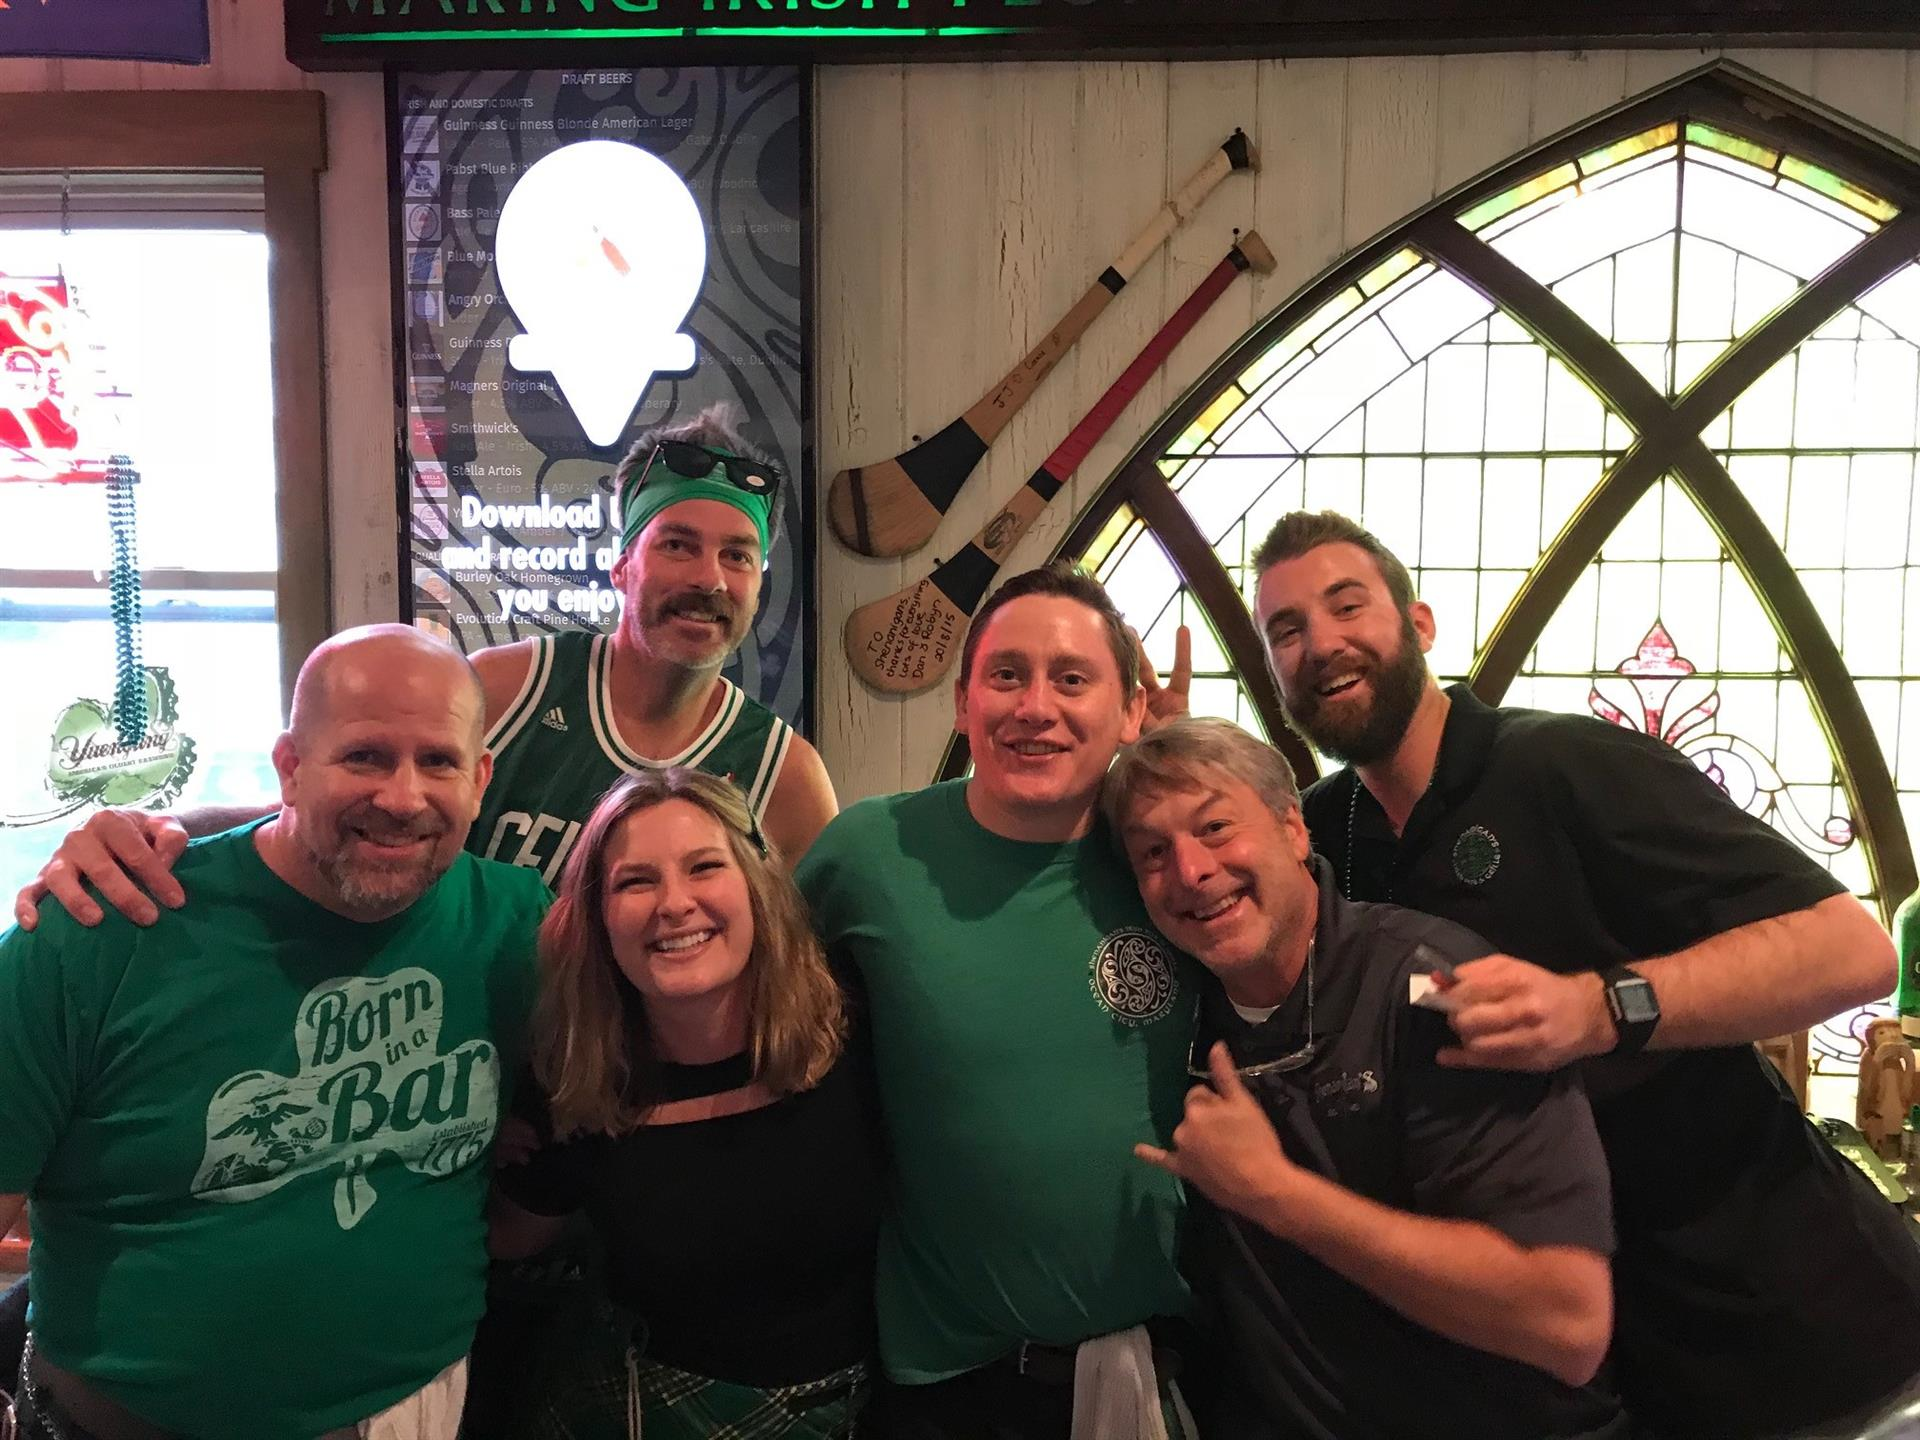 Six staff members at Shenanigans smiling and wearing green on St Patrick's Day 2018